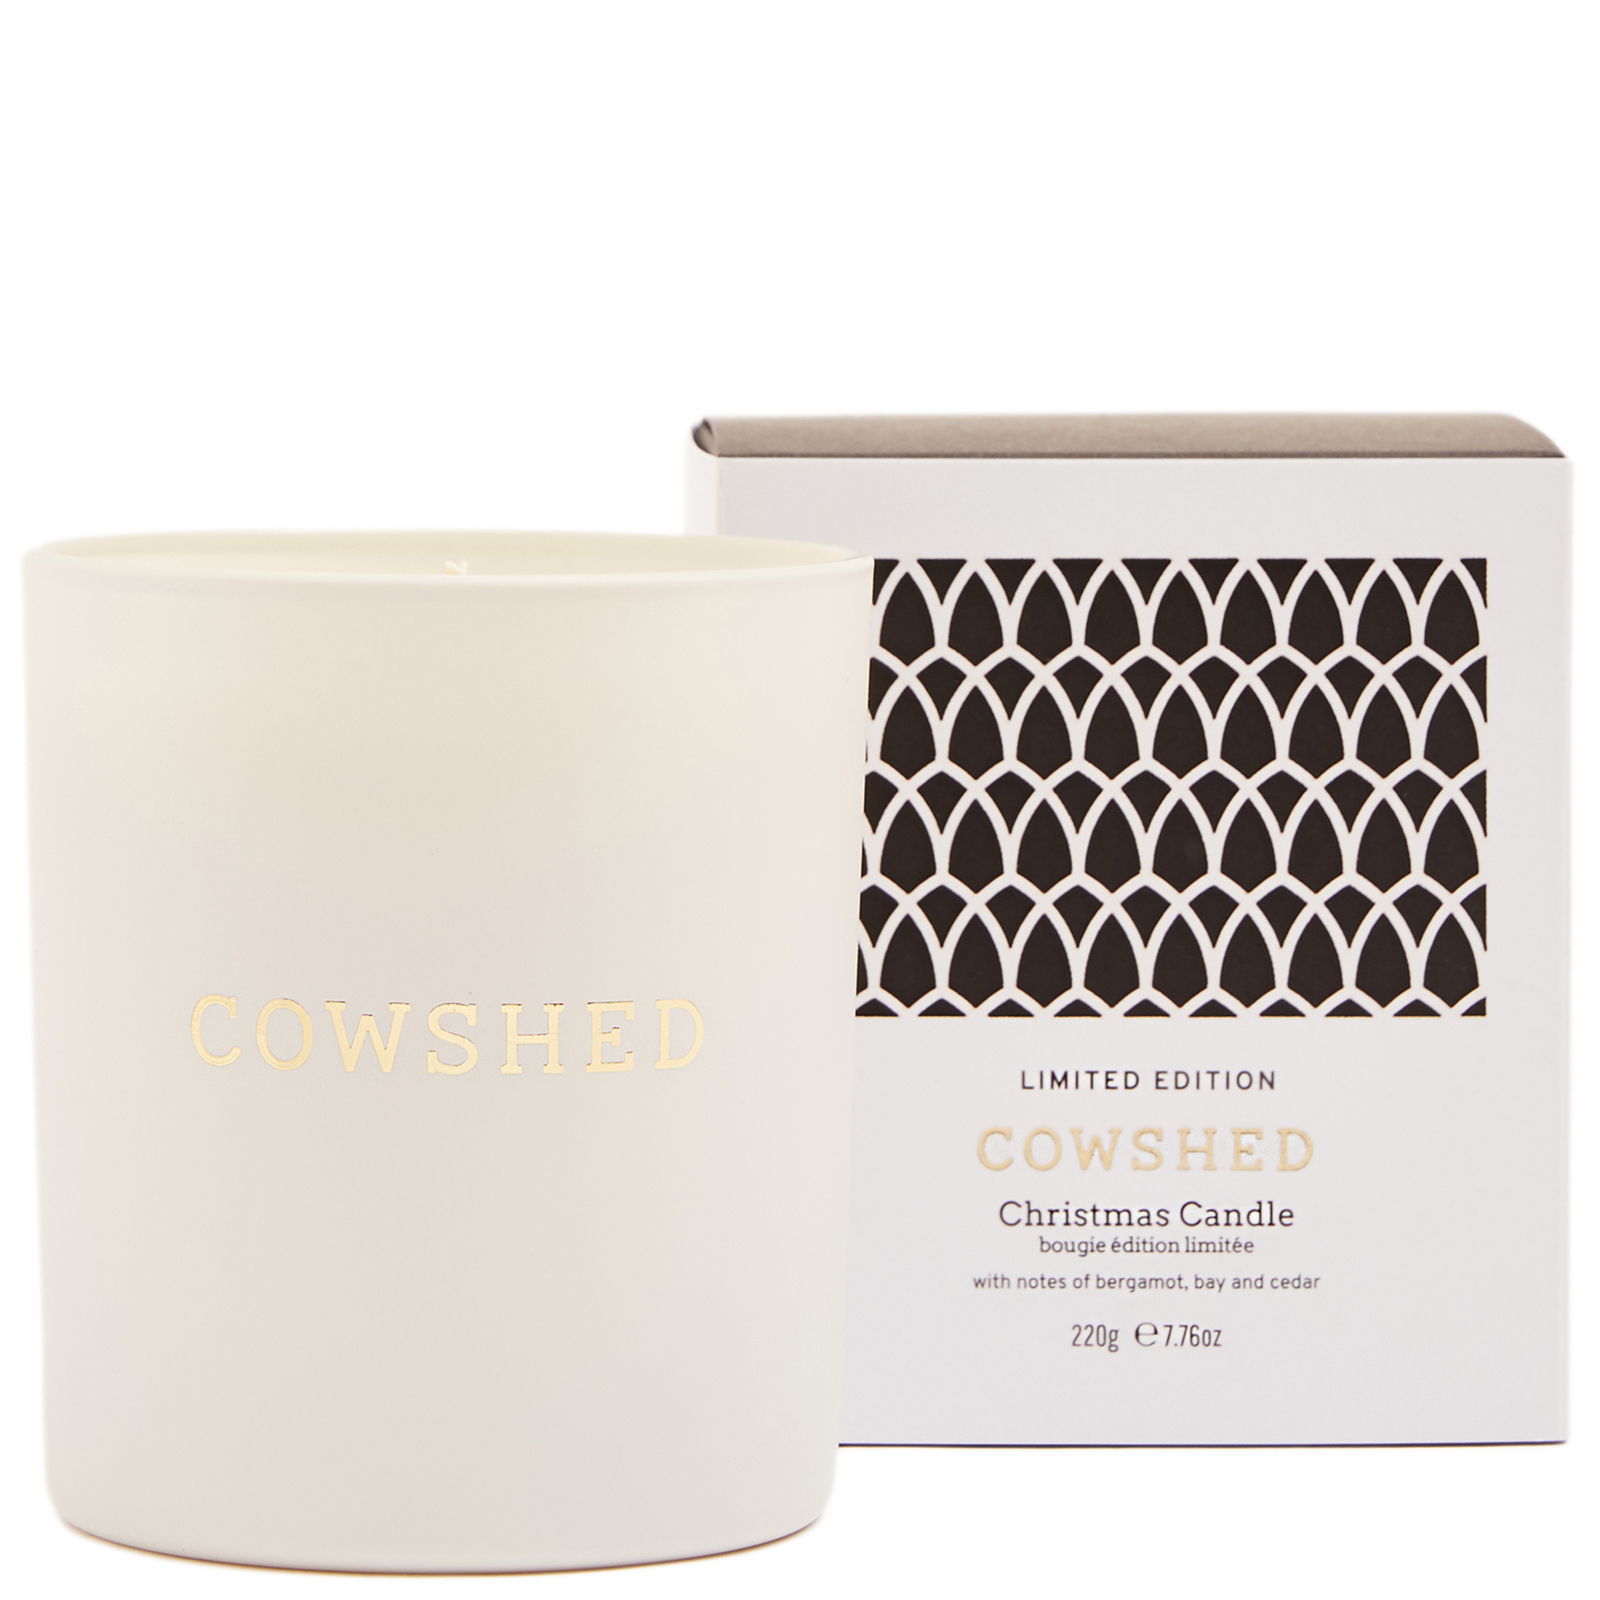 Cowshed Christmas 2020 Limited Edition Christmas Candle 220g